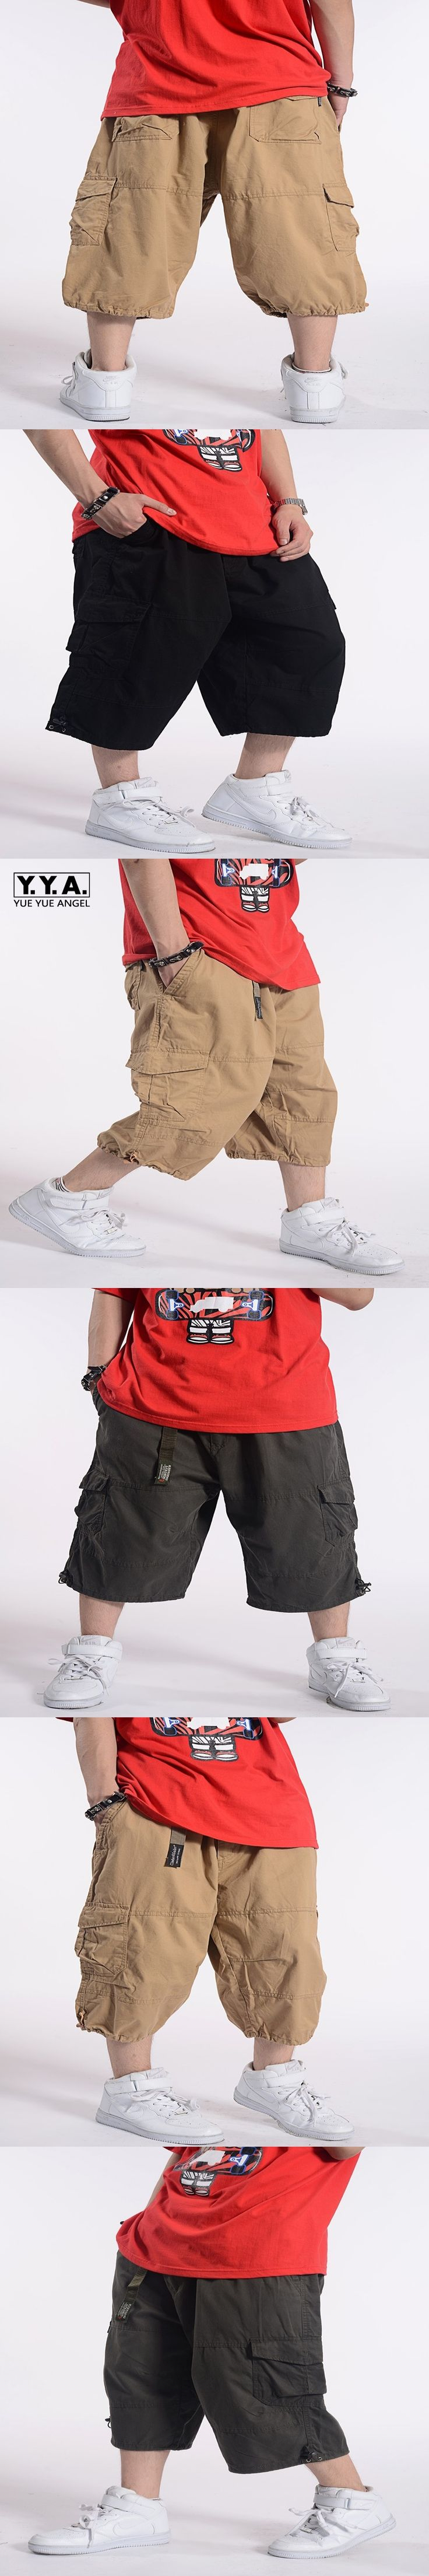 High Quality Fashion Casual Mens Short Pants Loose Cargo Baggy Overalls Hip Pop Skate Sweatpants Over Size Free Shipping